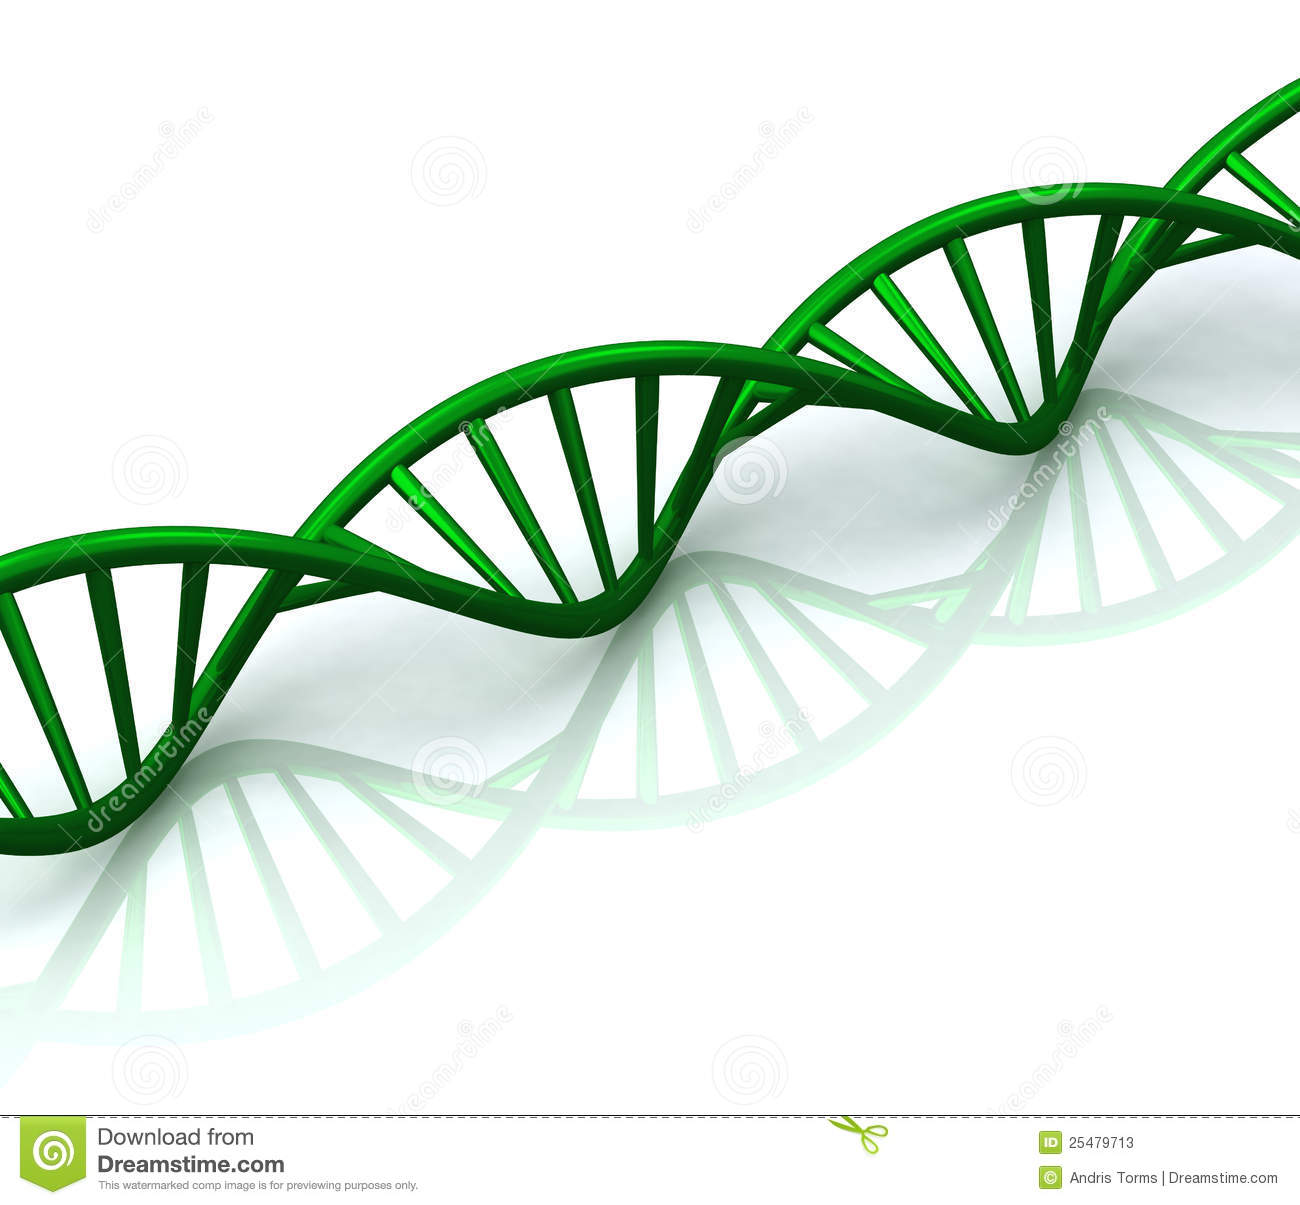 Stock Photos 3d Abstract Green Dna Spiral Reflection Image25479713 on Green Spiral Shape